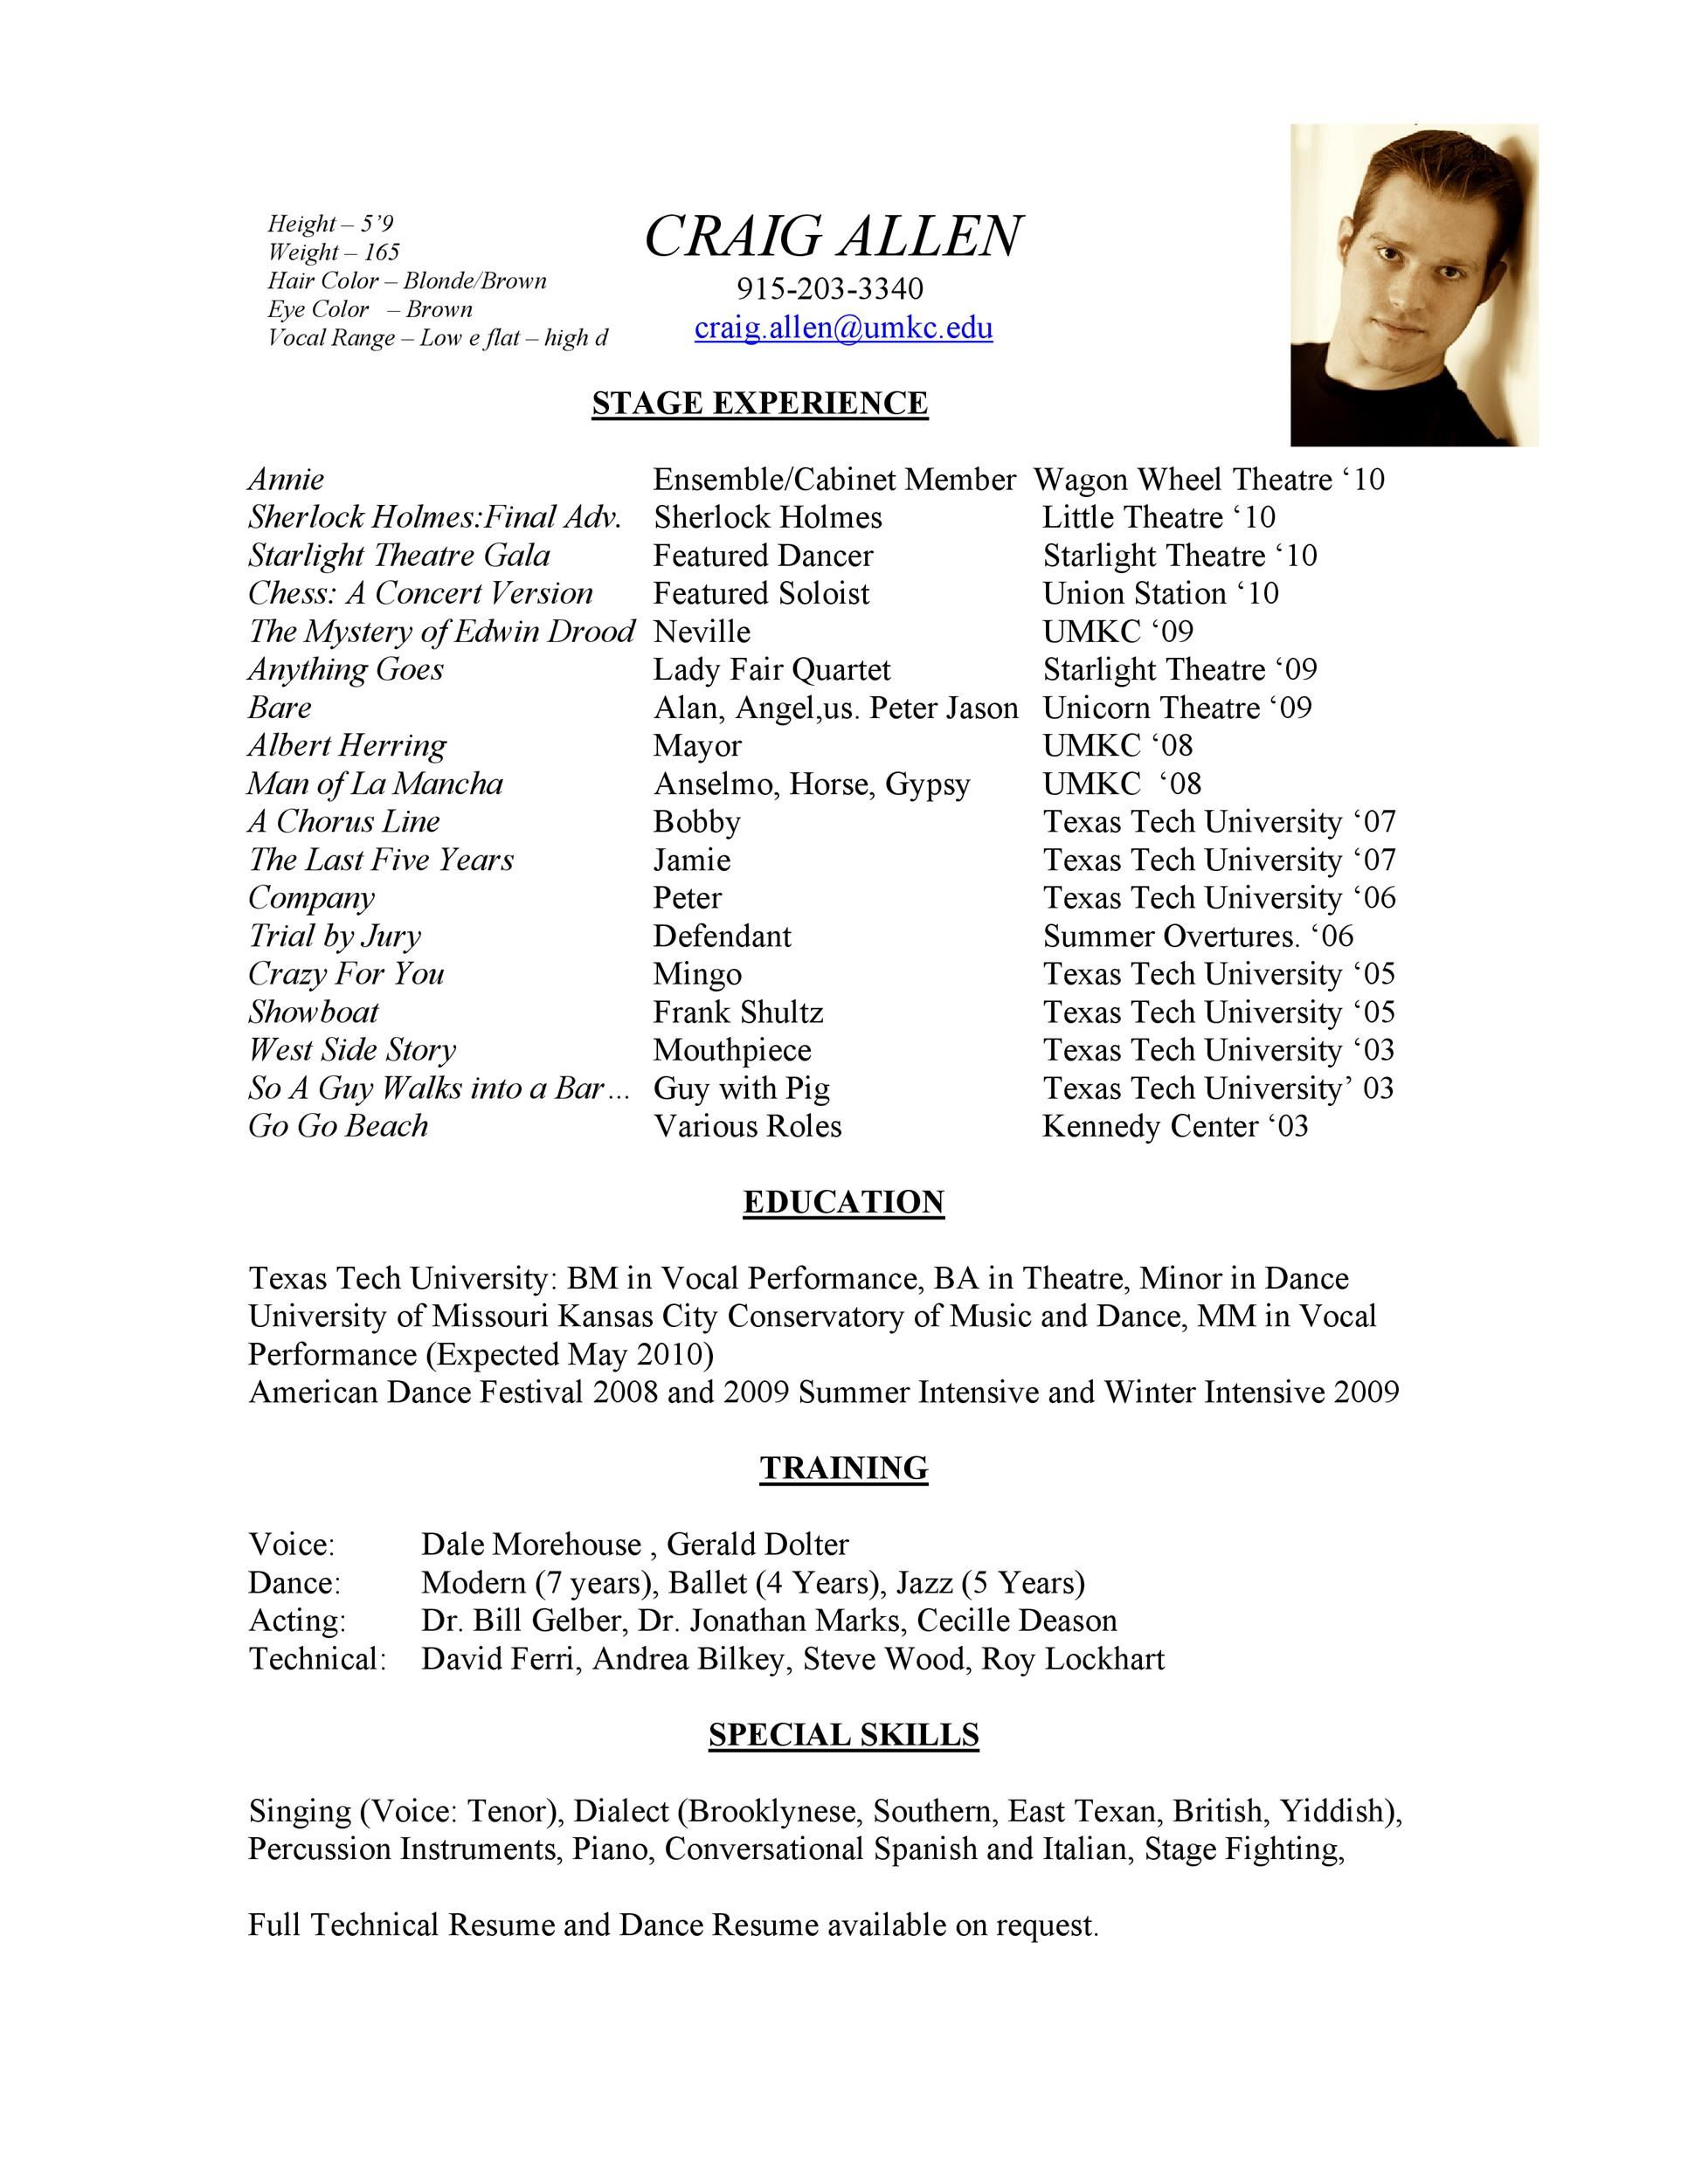 004 Beautiful Technical Theatre Resume Template High Resolution  Google Doc TechFull